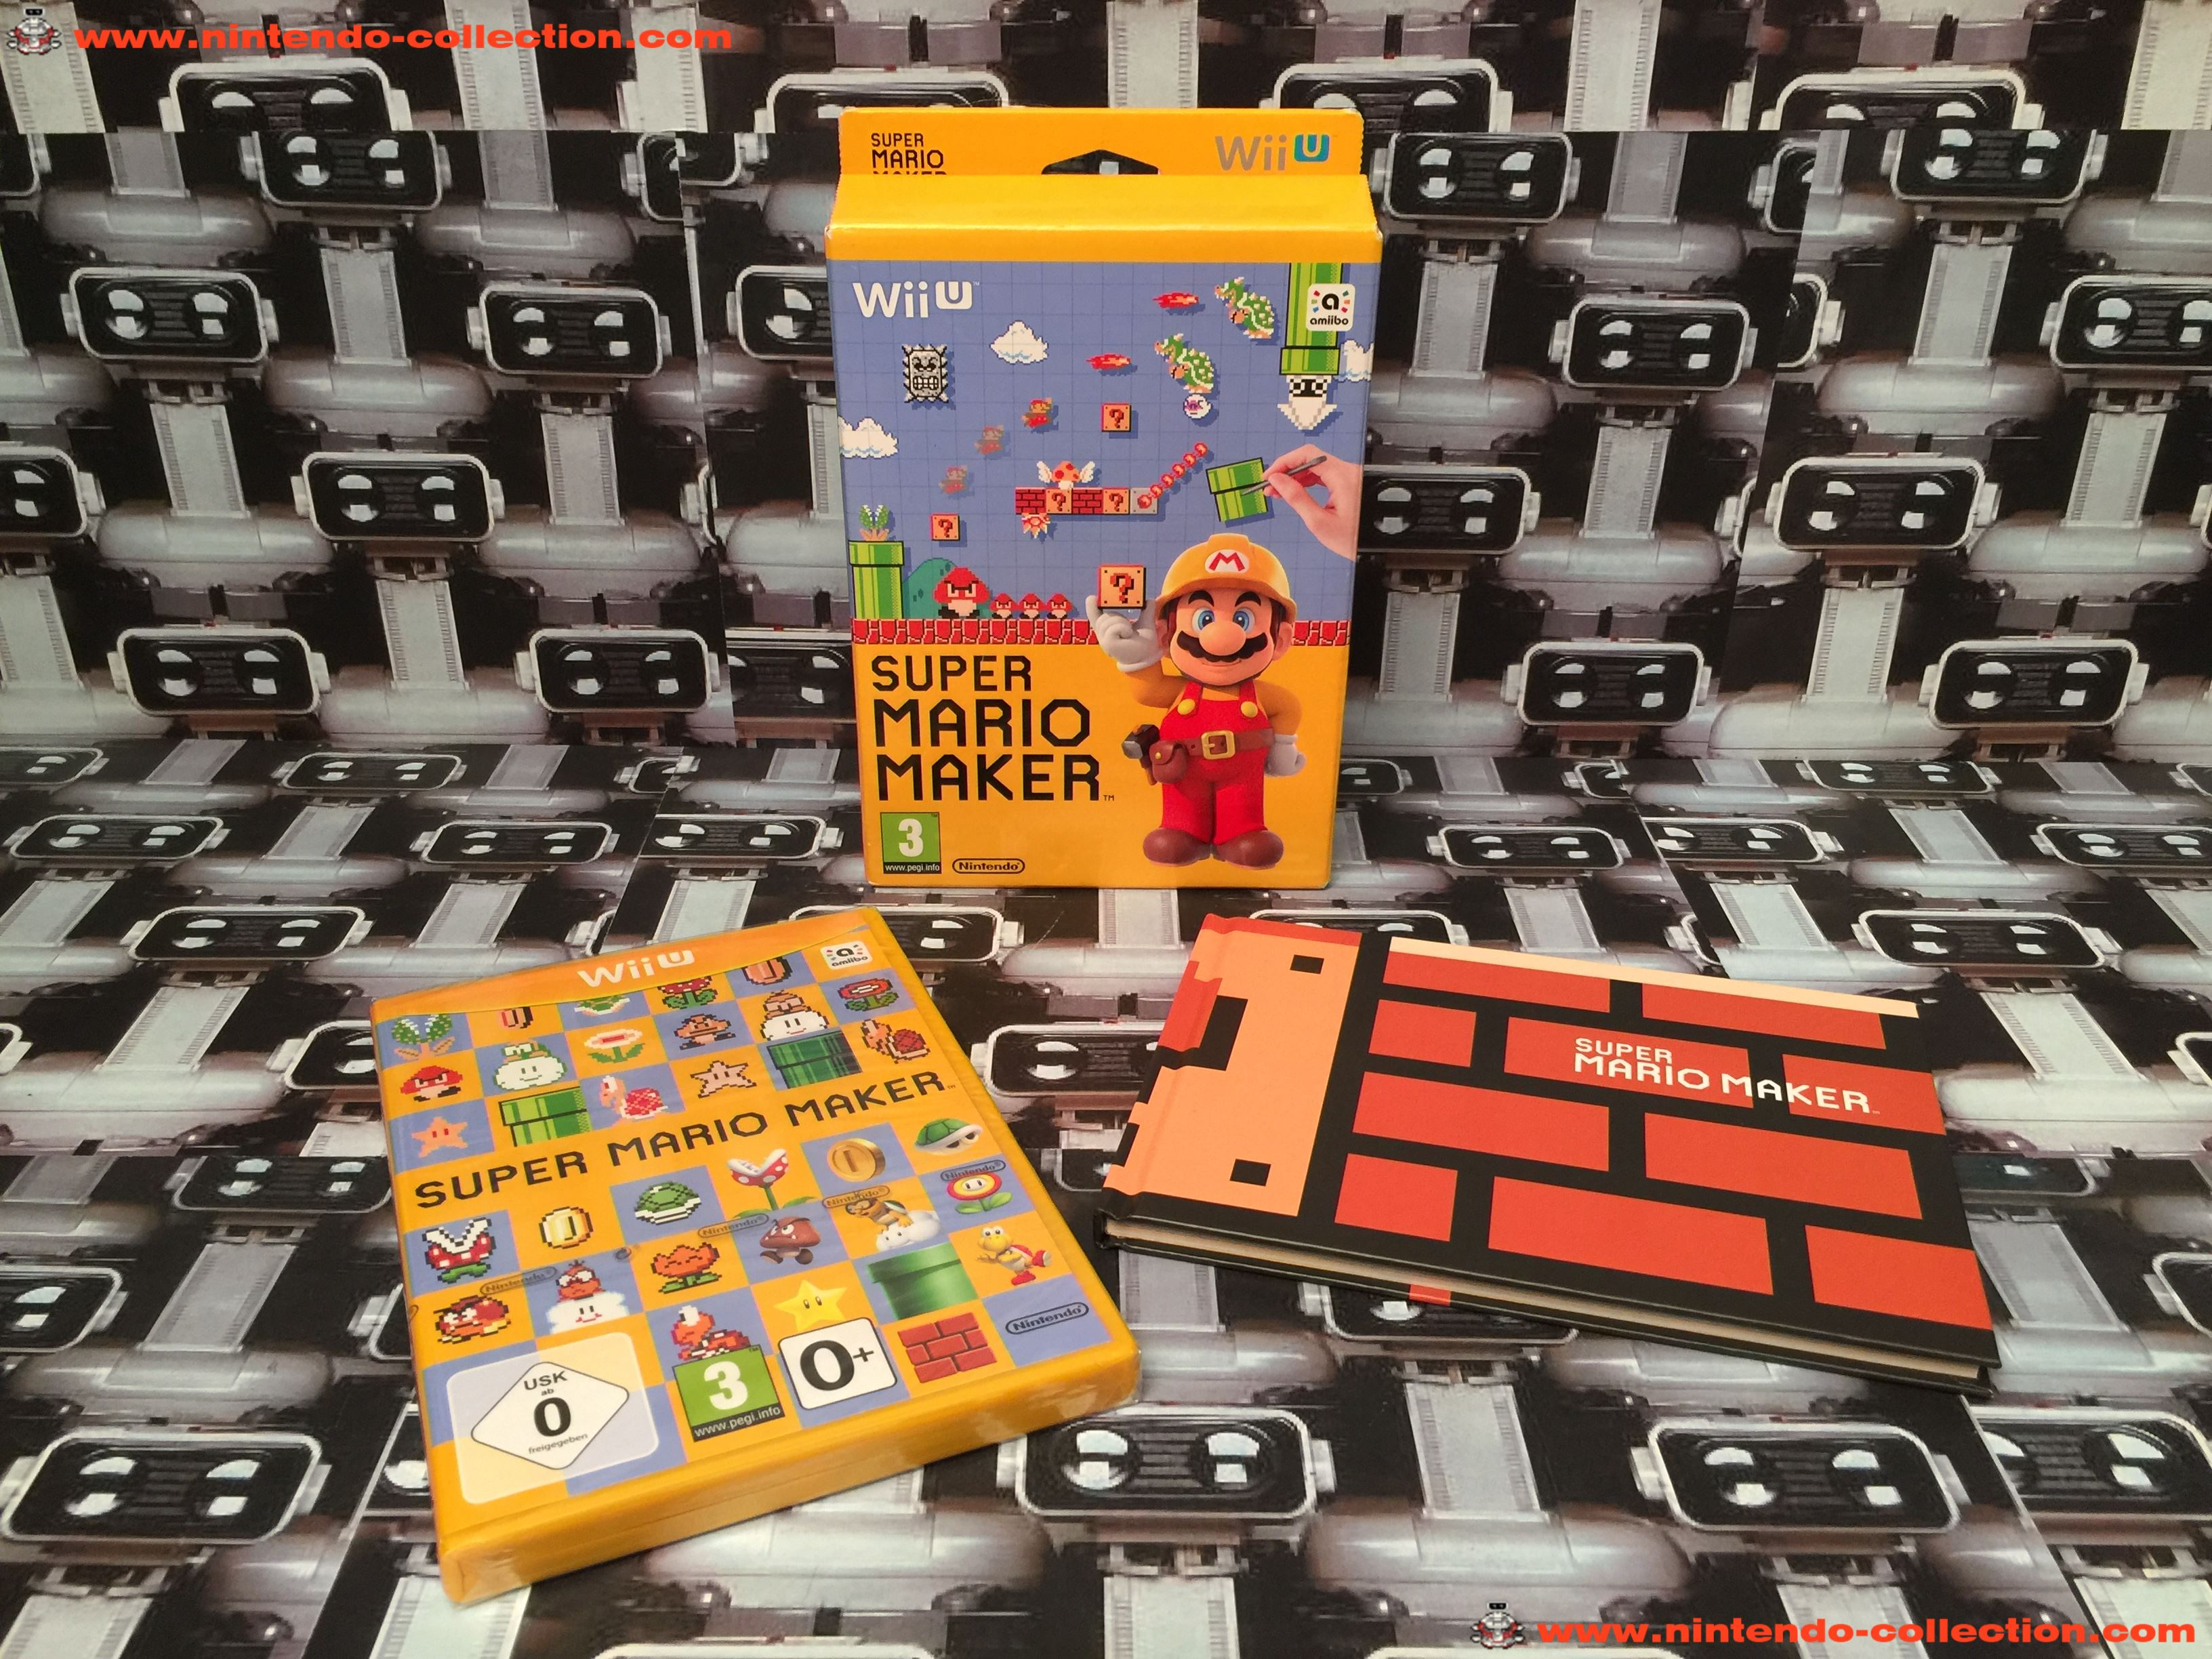 www.nintendo-collection.com - Wii U Game Jeux Super Mario Maker limited edition Mario 30th - 02